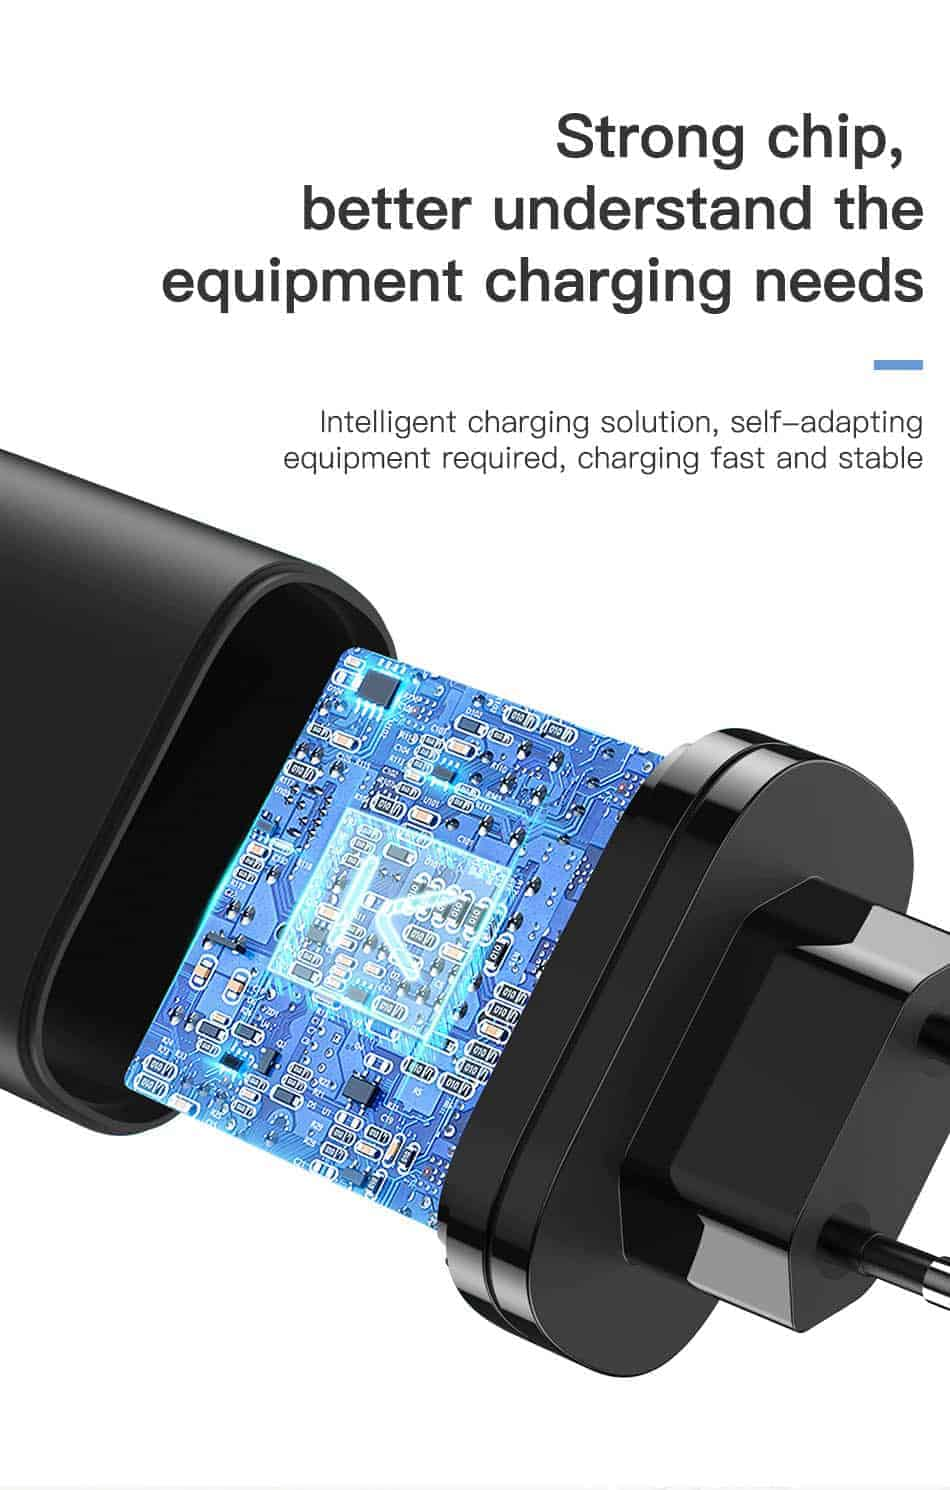 KUULAA Quick Charge 3.0 USB Charger 30W QC3.0 QC Fast Charging Stroong Chip better